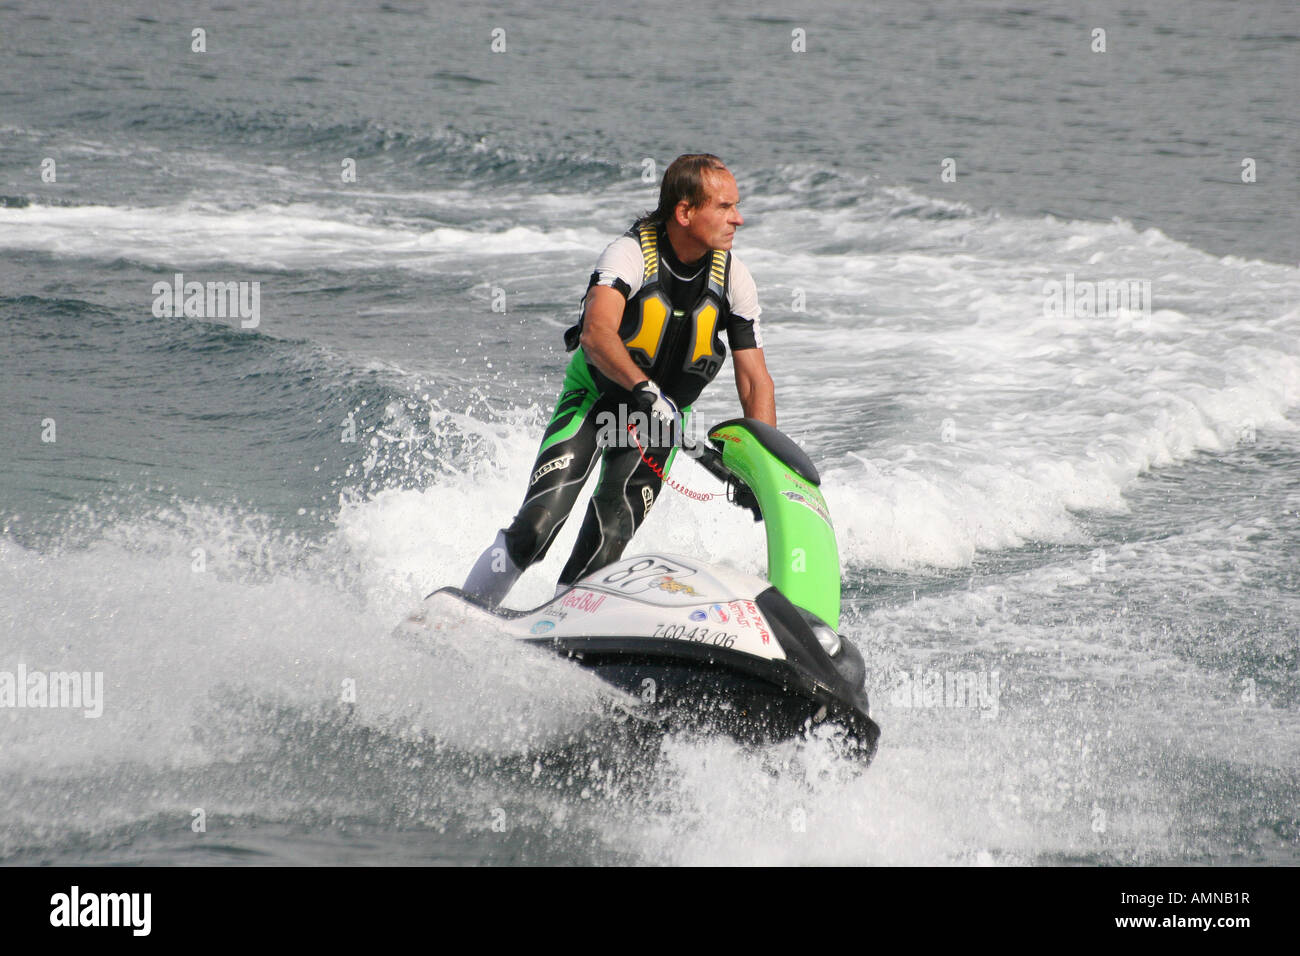 Man At Speed On A Standing Type Water Jet Ski Bike Stock Photo